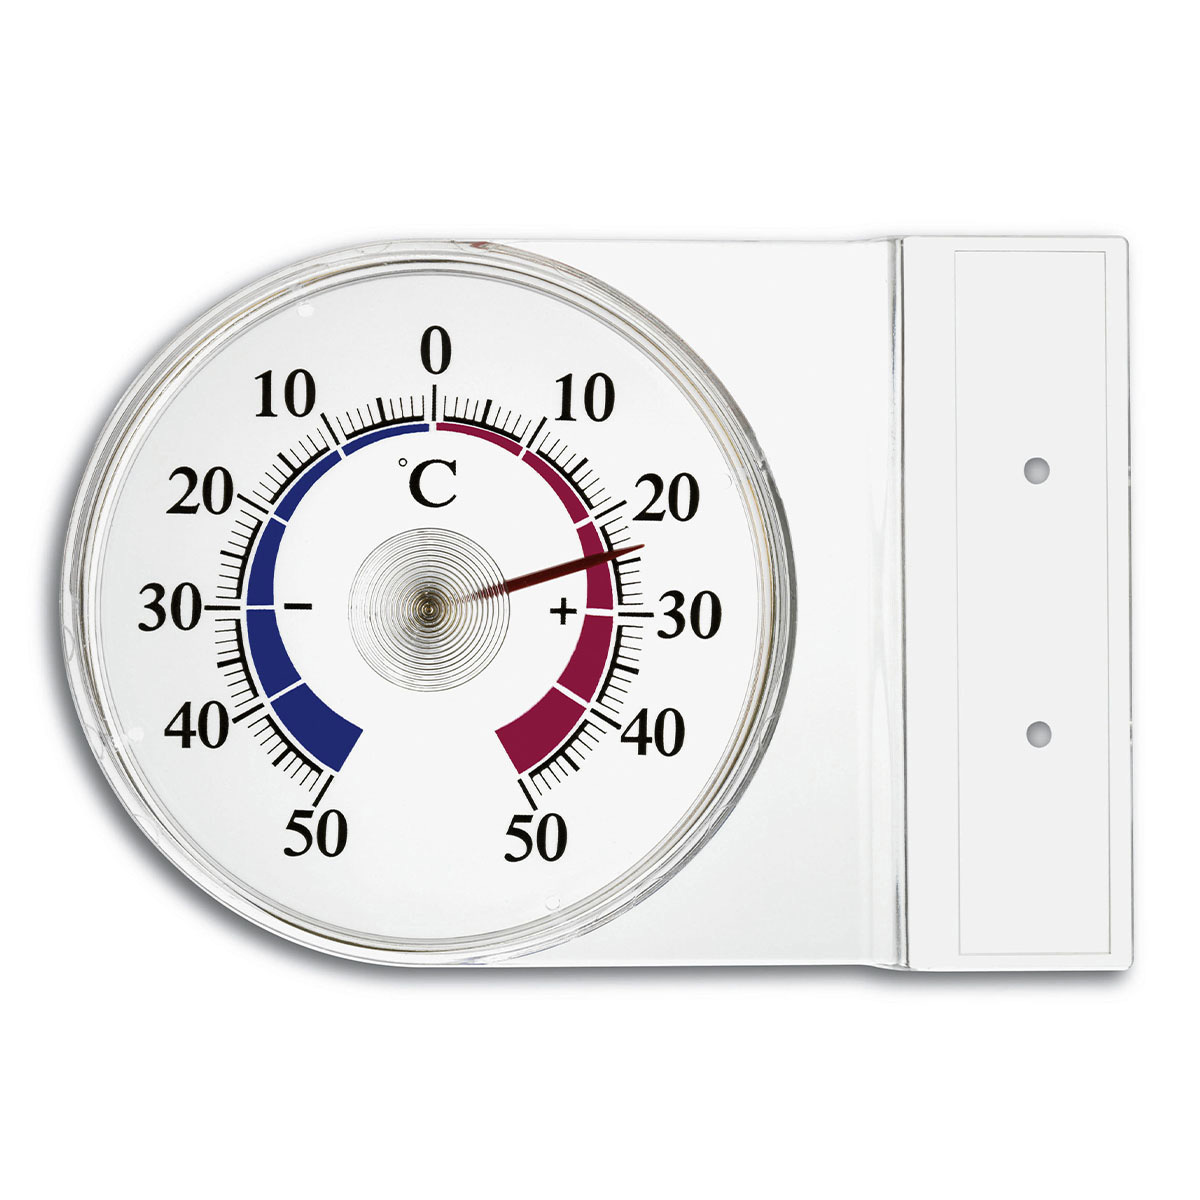 14-6003-analoges-fensterthermometer-1200x1200px.jpg